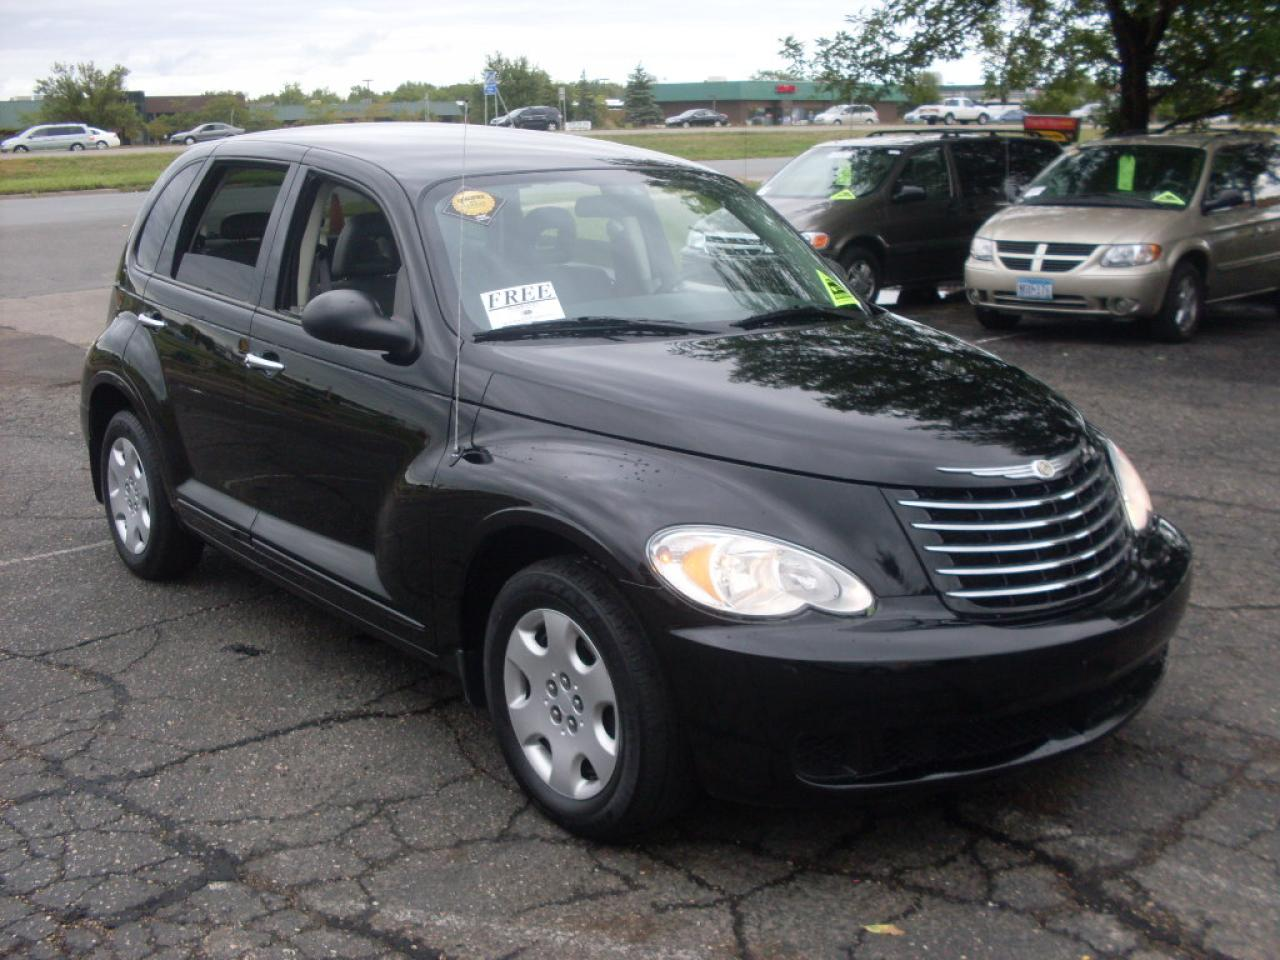 2007 chrysler pt cruiser information and photos zombiedrive. Black Bedroom Furniture Sets. Home Design Ideas